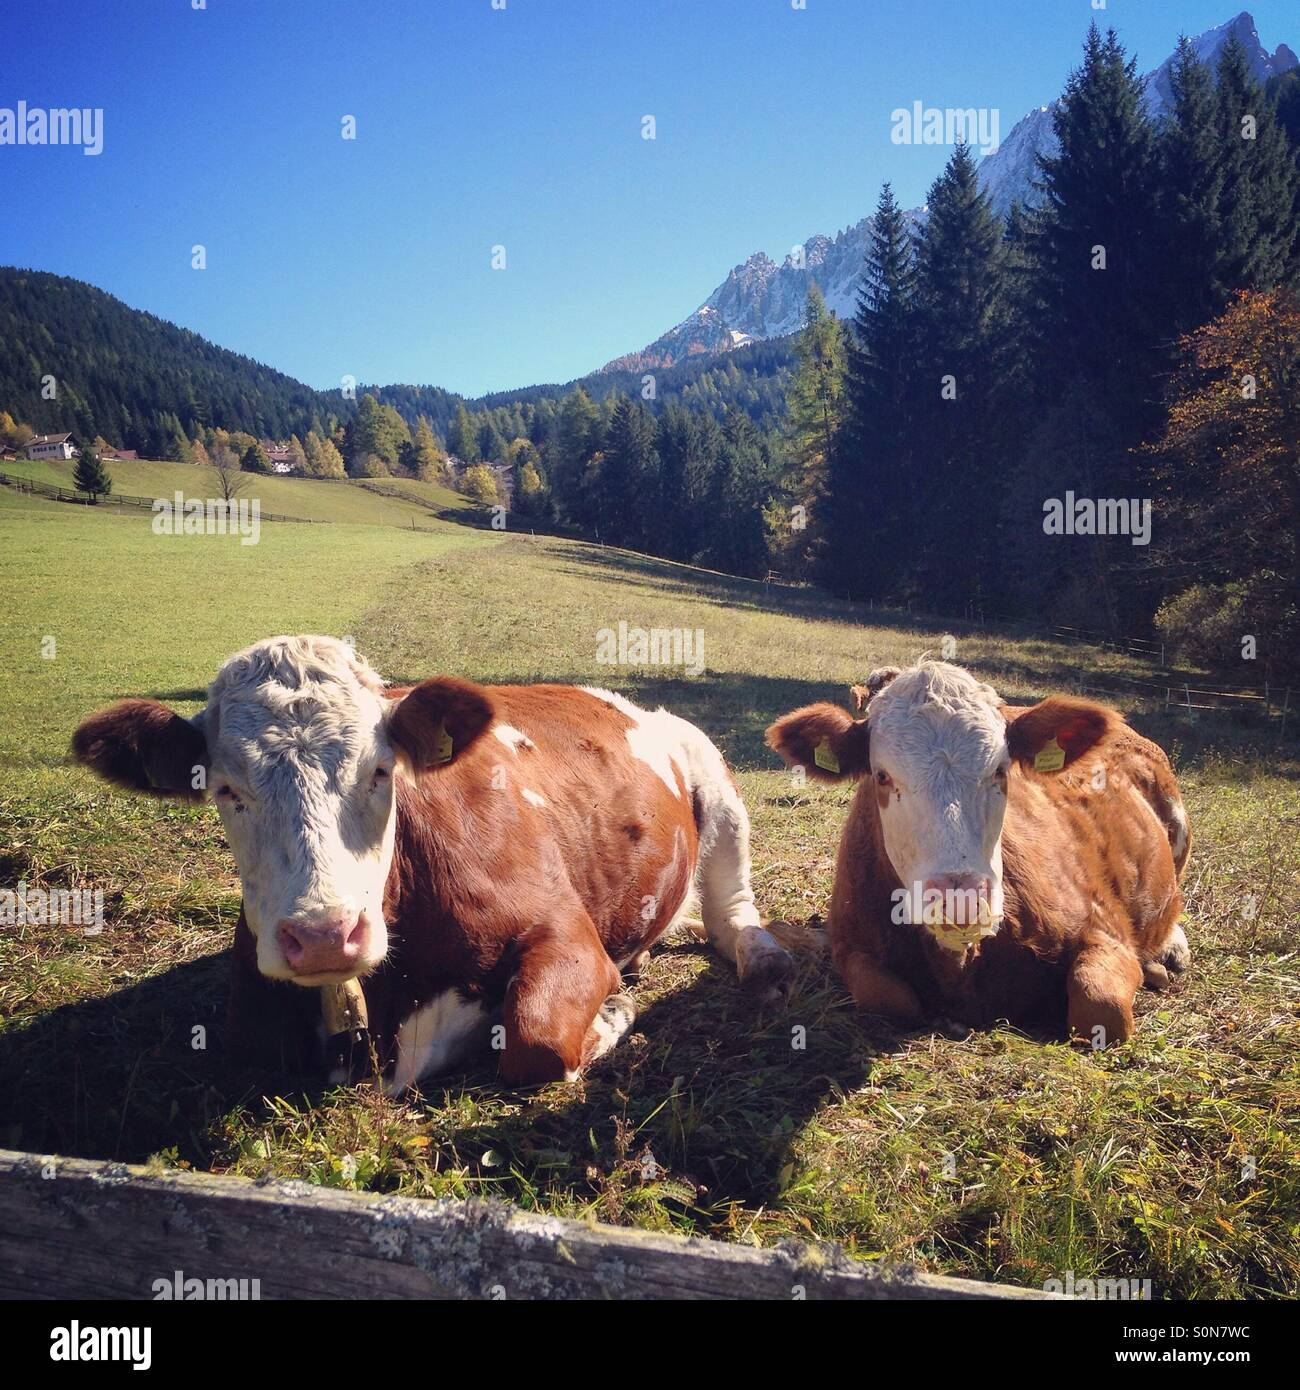 Two cows from South Tyrol, Italy - Stock Image